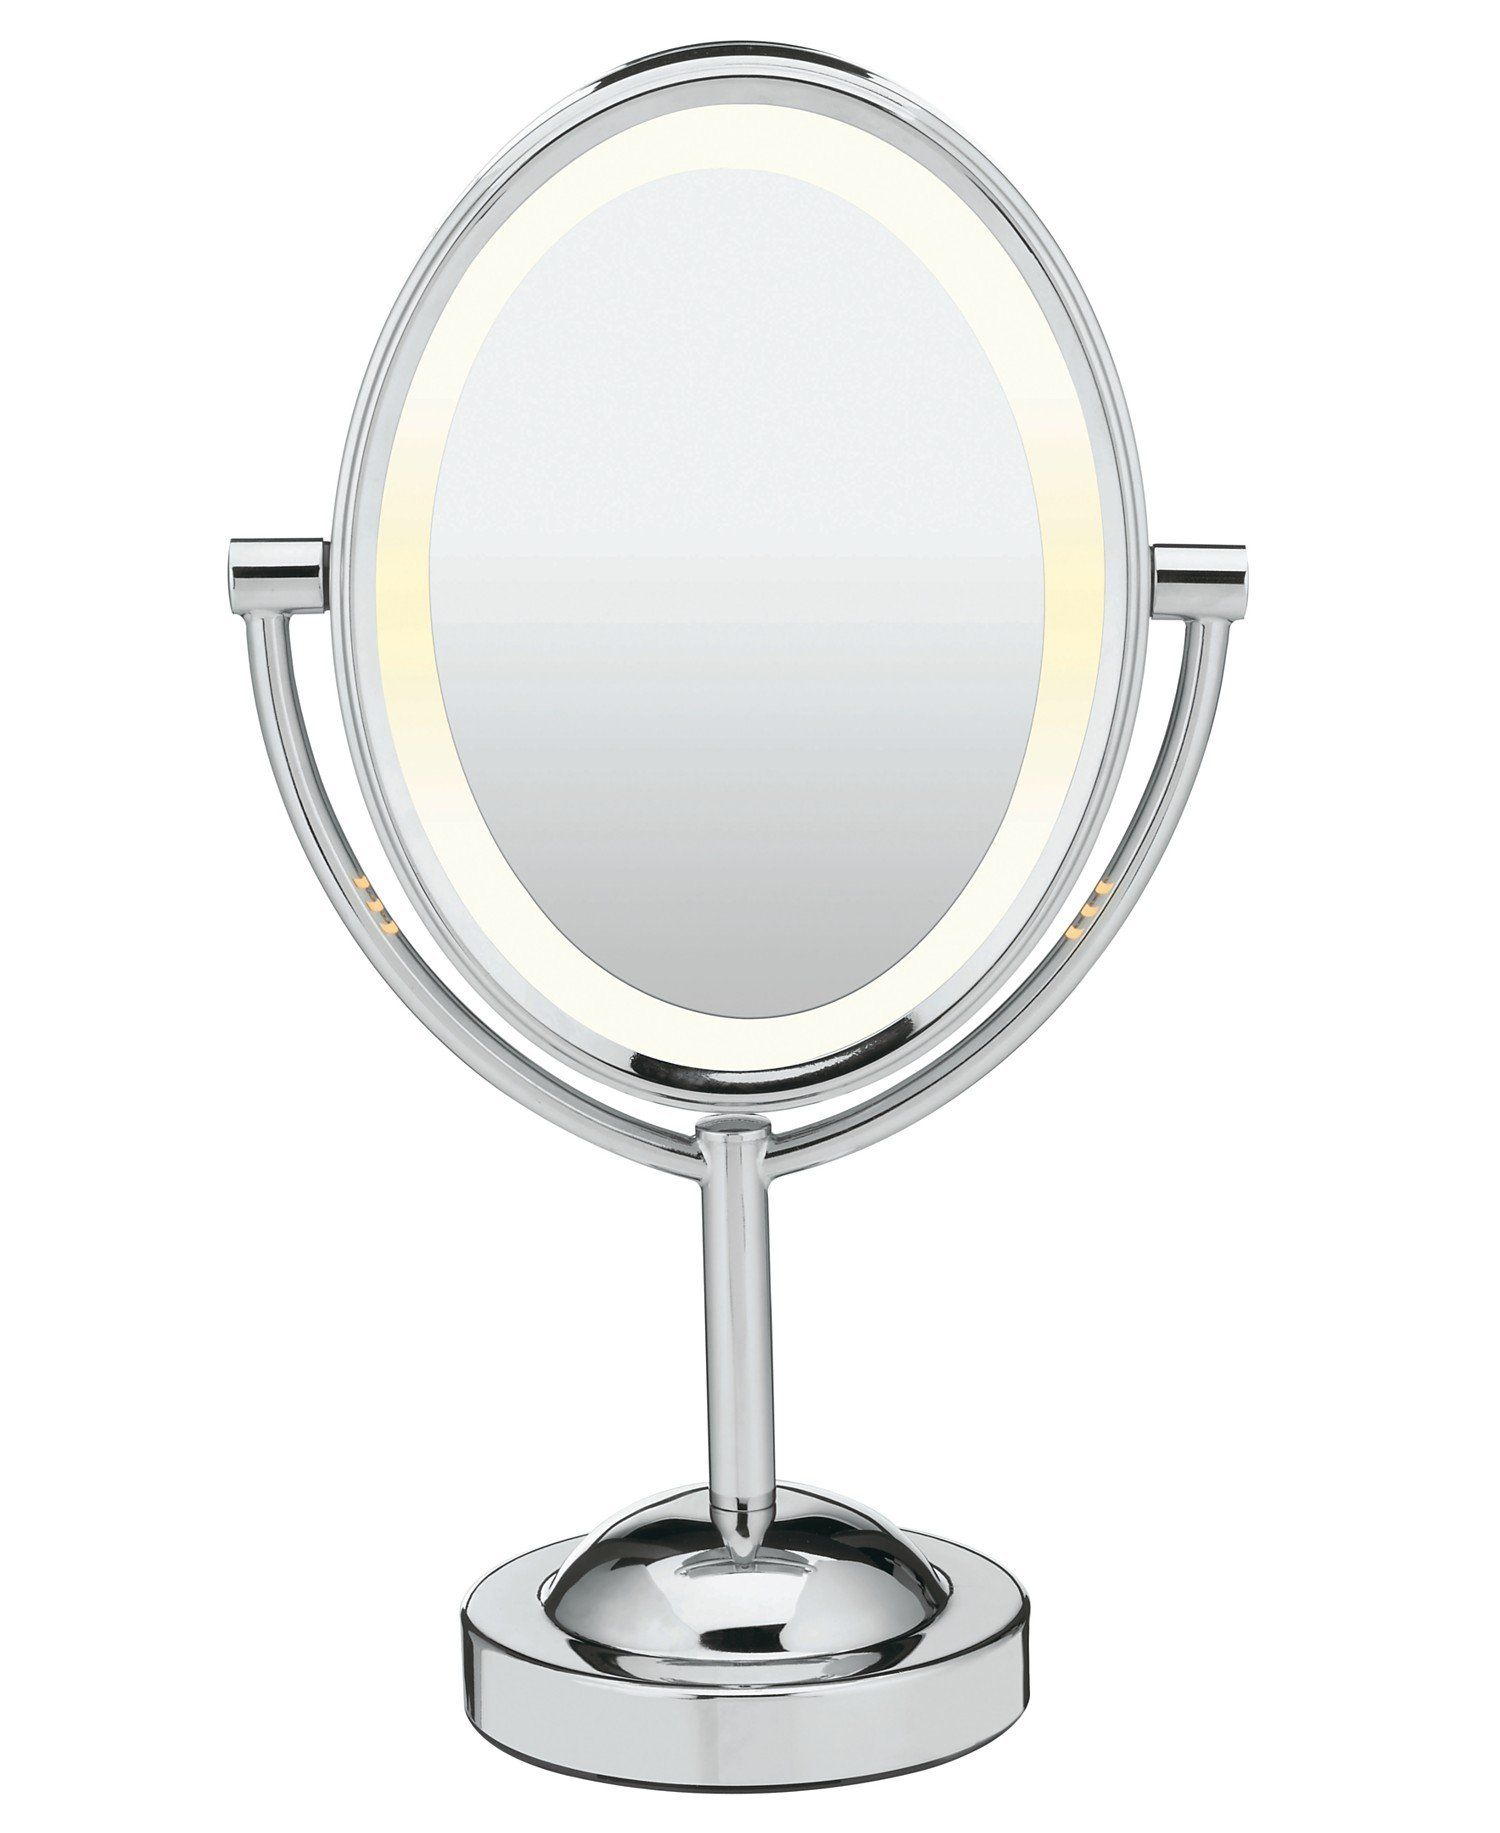 Conair Oval Double Sided Lighted Makeup Mirror Polished Chrome Finish Makeup Mirror With